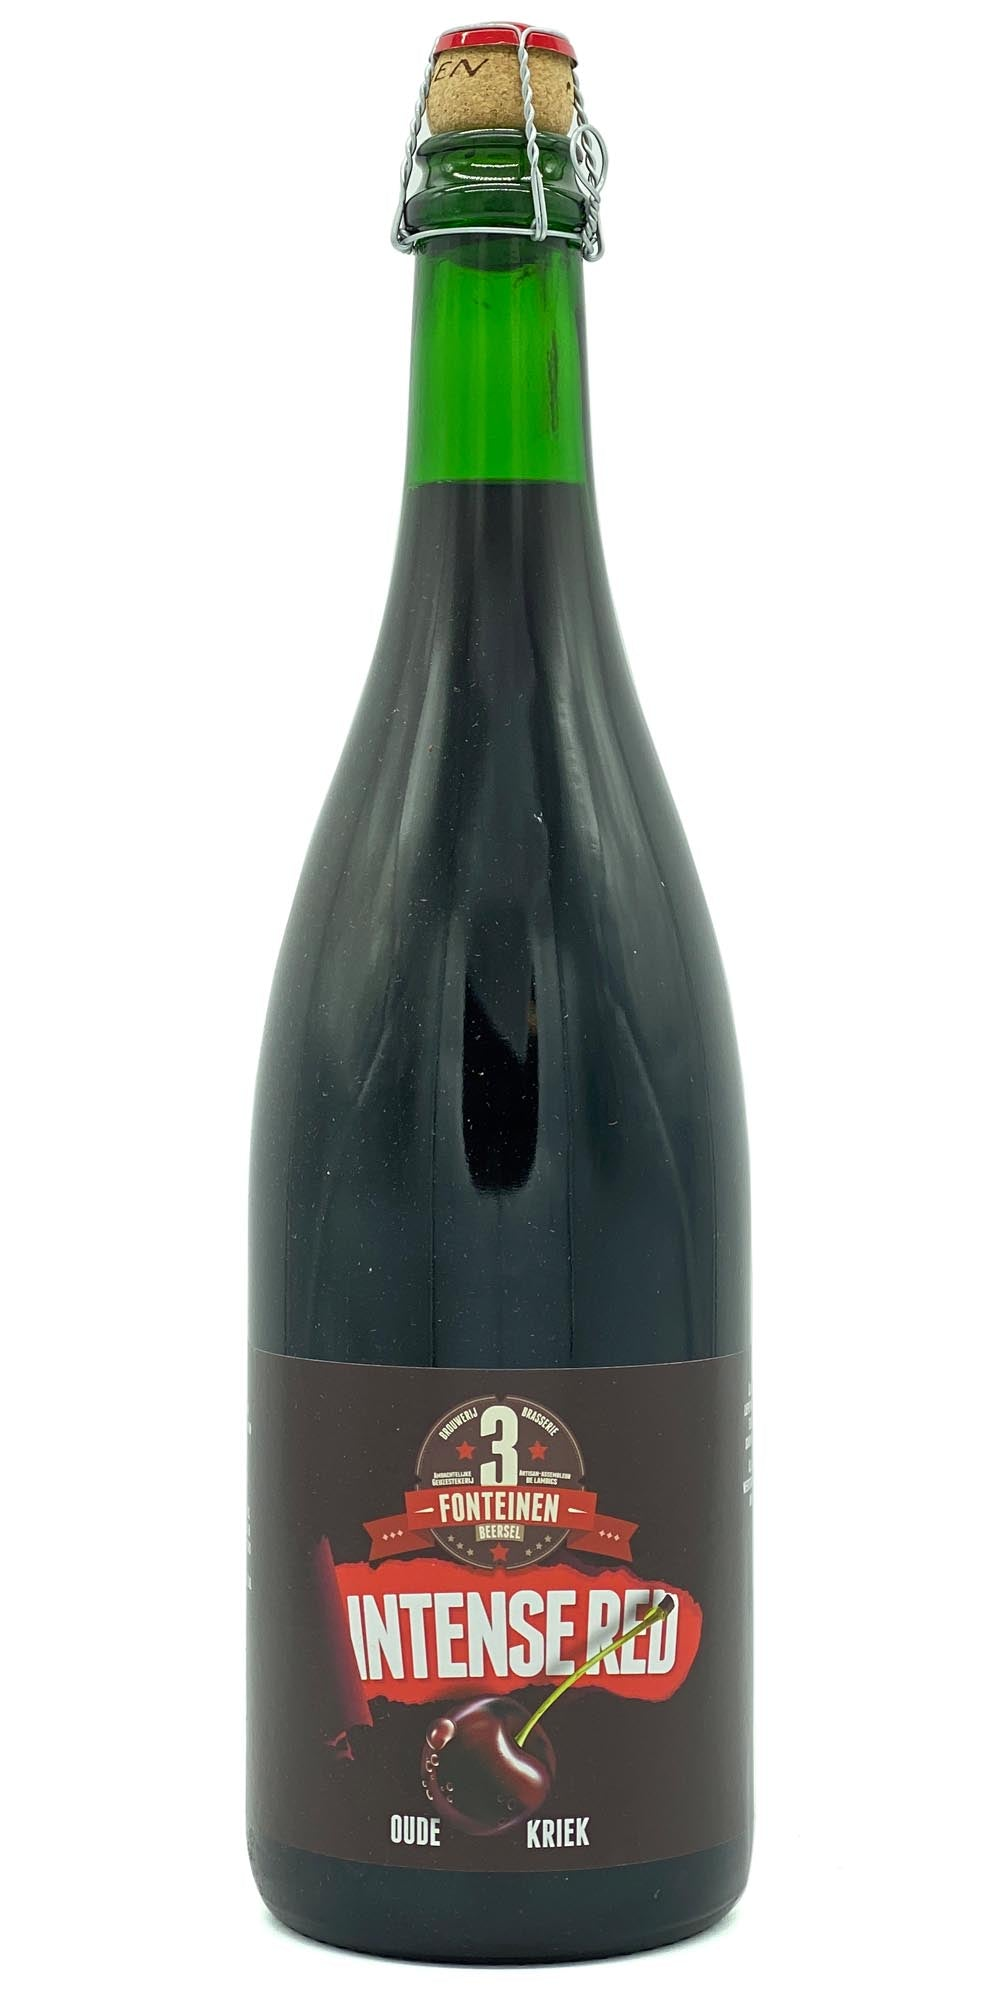 3 Fonteinen - Intense Red Oude Kriek 2016 - Drikbeer - Order Craft Beer Online